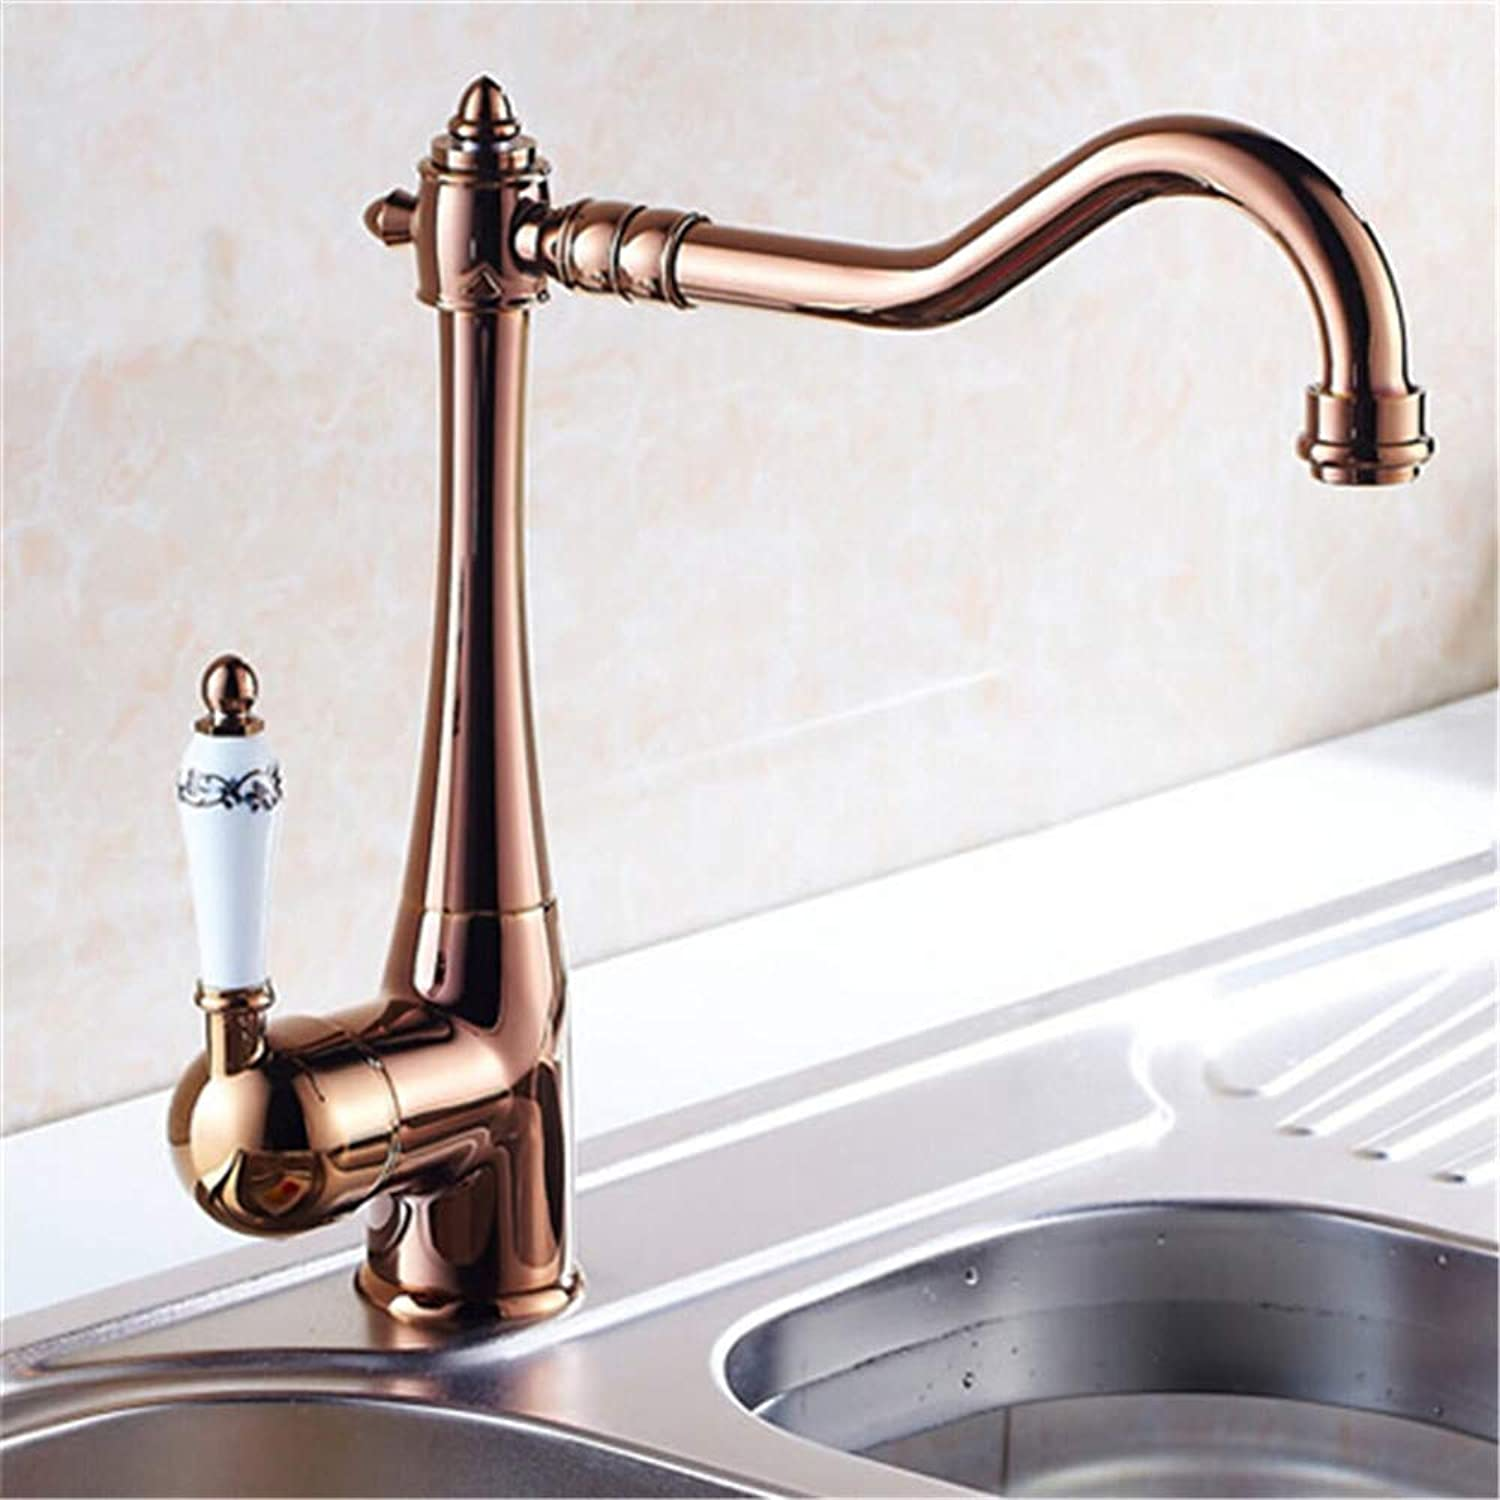 Oudan European Retro Style and gold Surface Kitchen Faucet Bathroom Basin Faucet by Brass Sink Faucet Water Mixer Tap,B (color   B, Size   -)